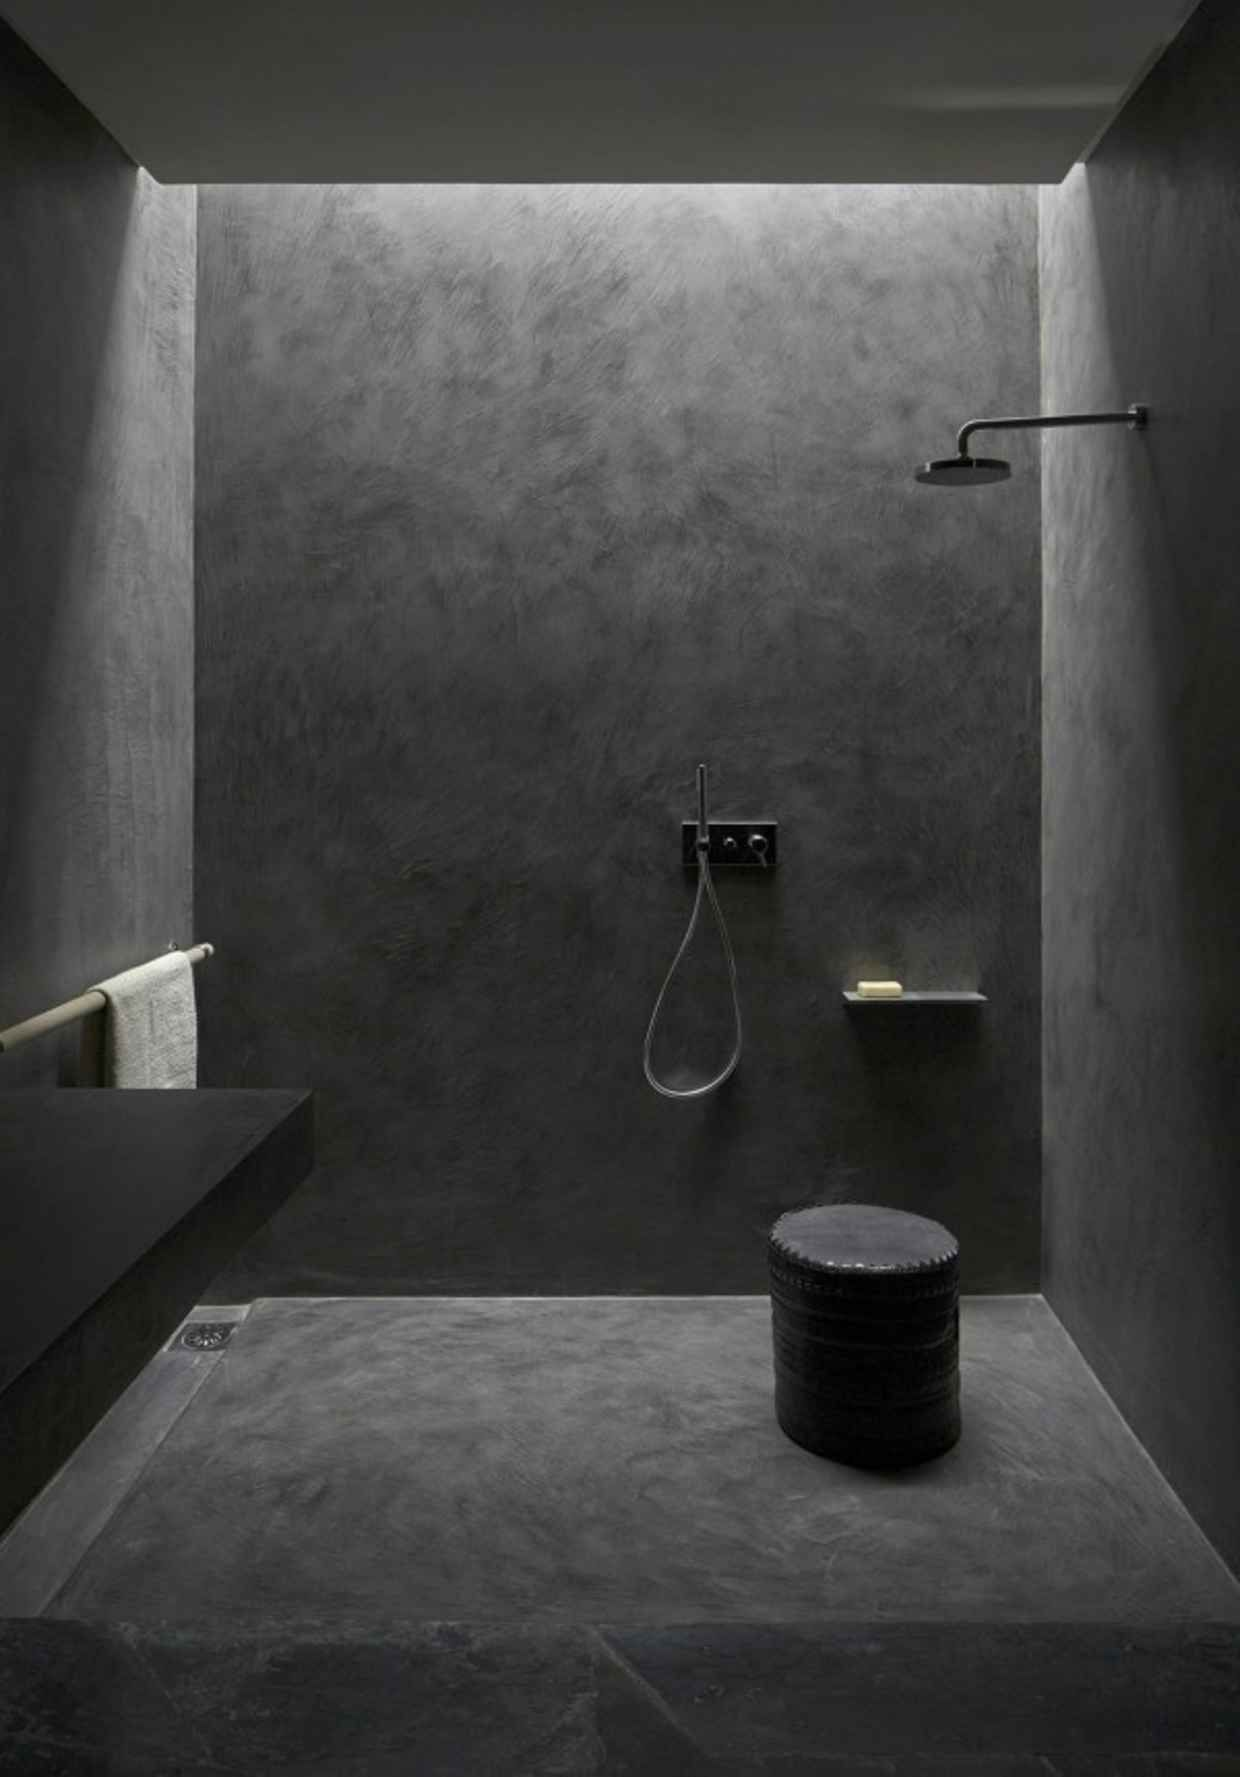 20 Examples Of Minimal Interior Design #29 | Bathrooms to ... on